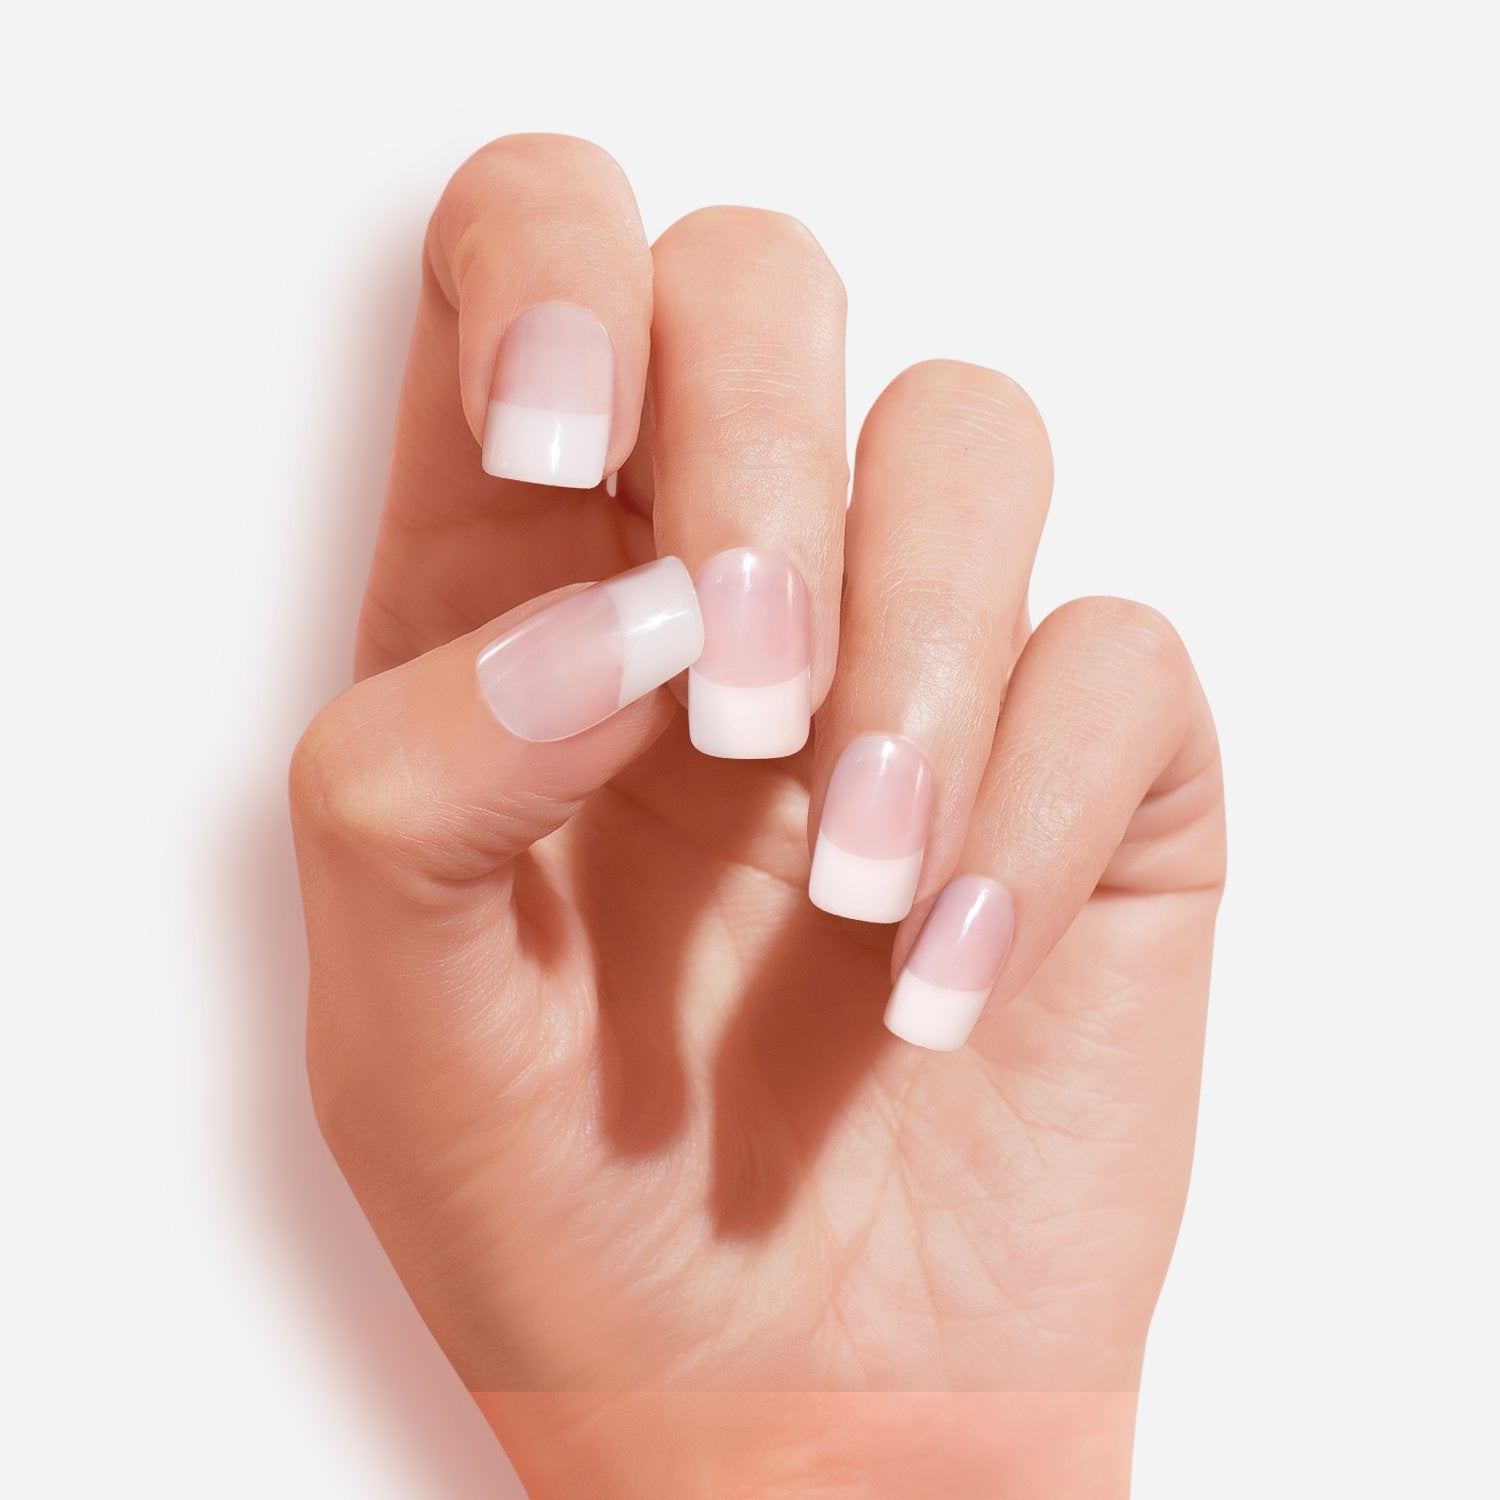 Rapture Fake Nails Kit Stiletto Pointed French White Nude 16 Nails Artificial Nail Tips